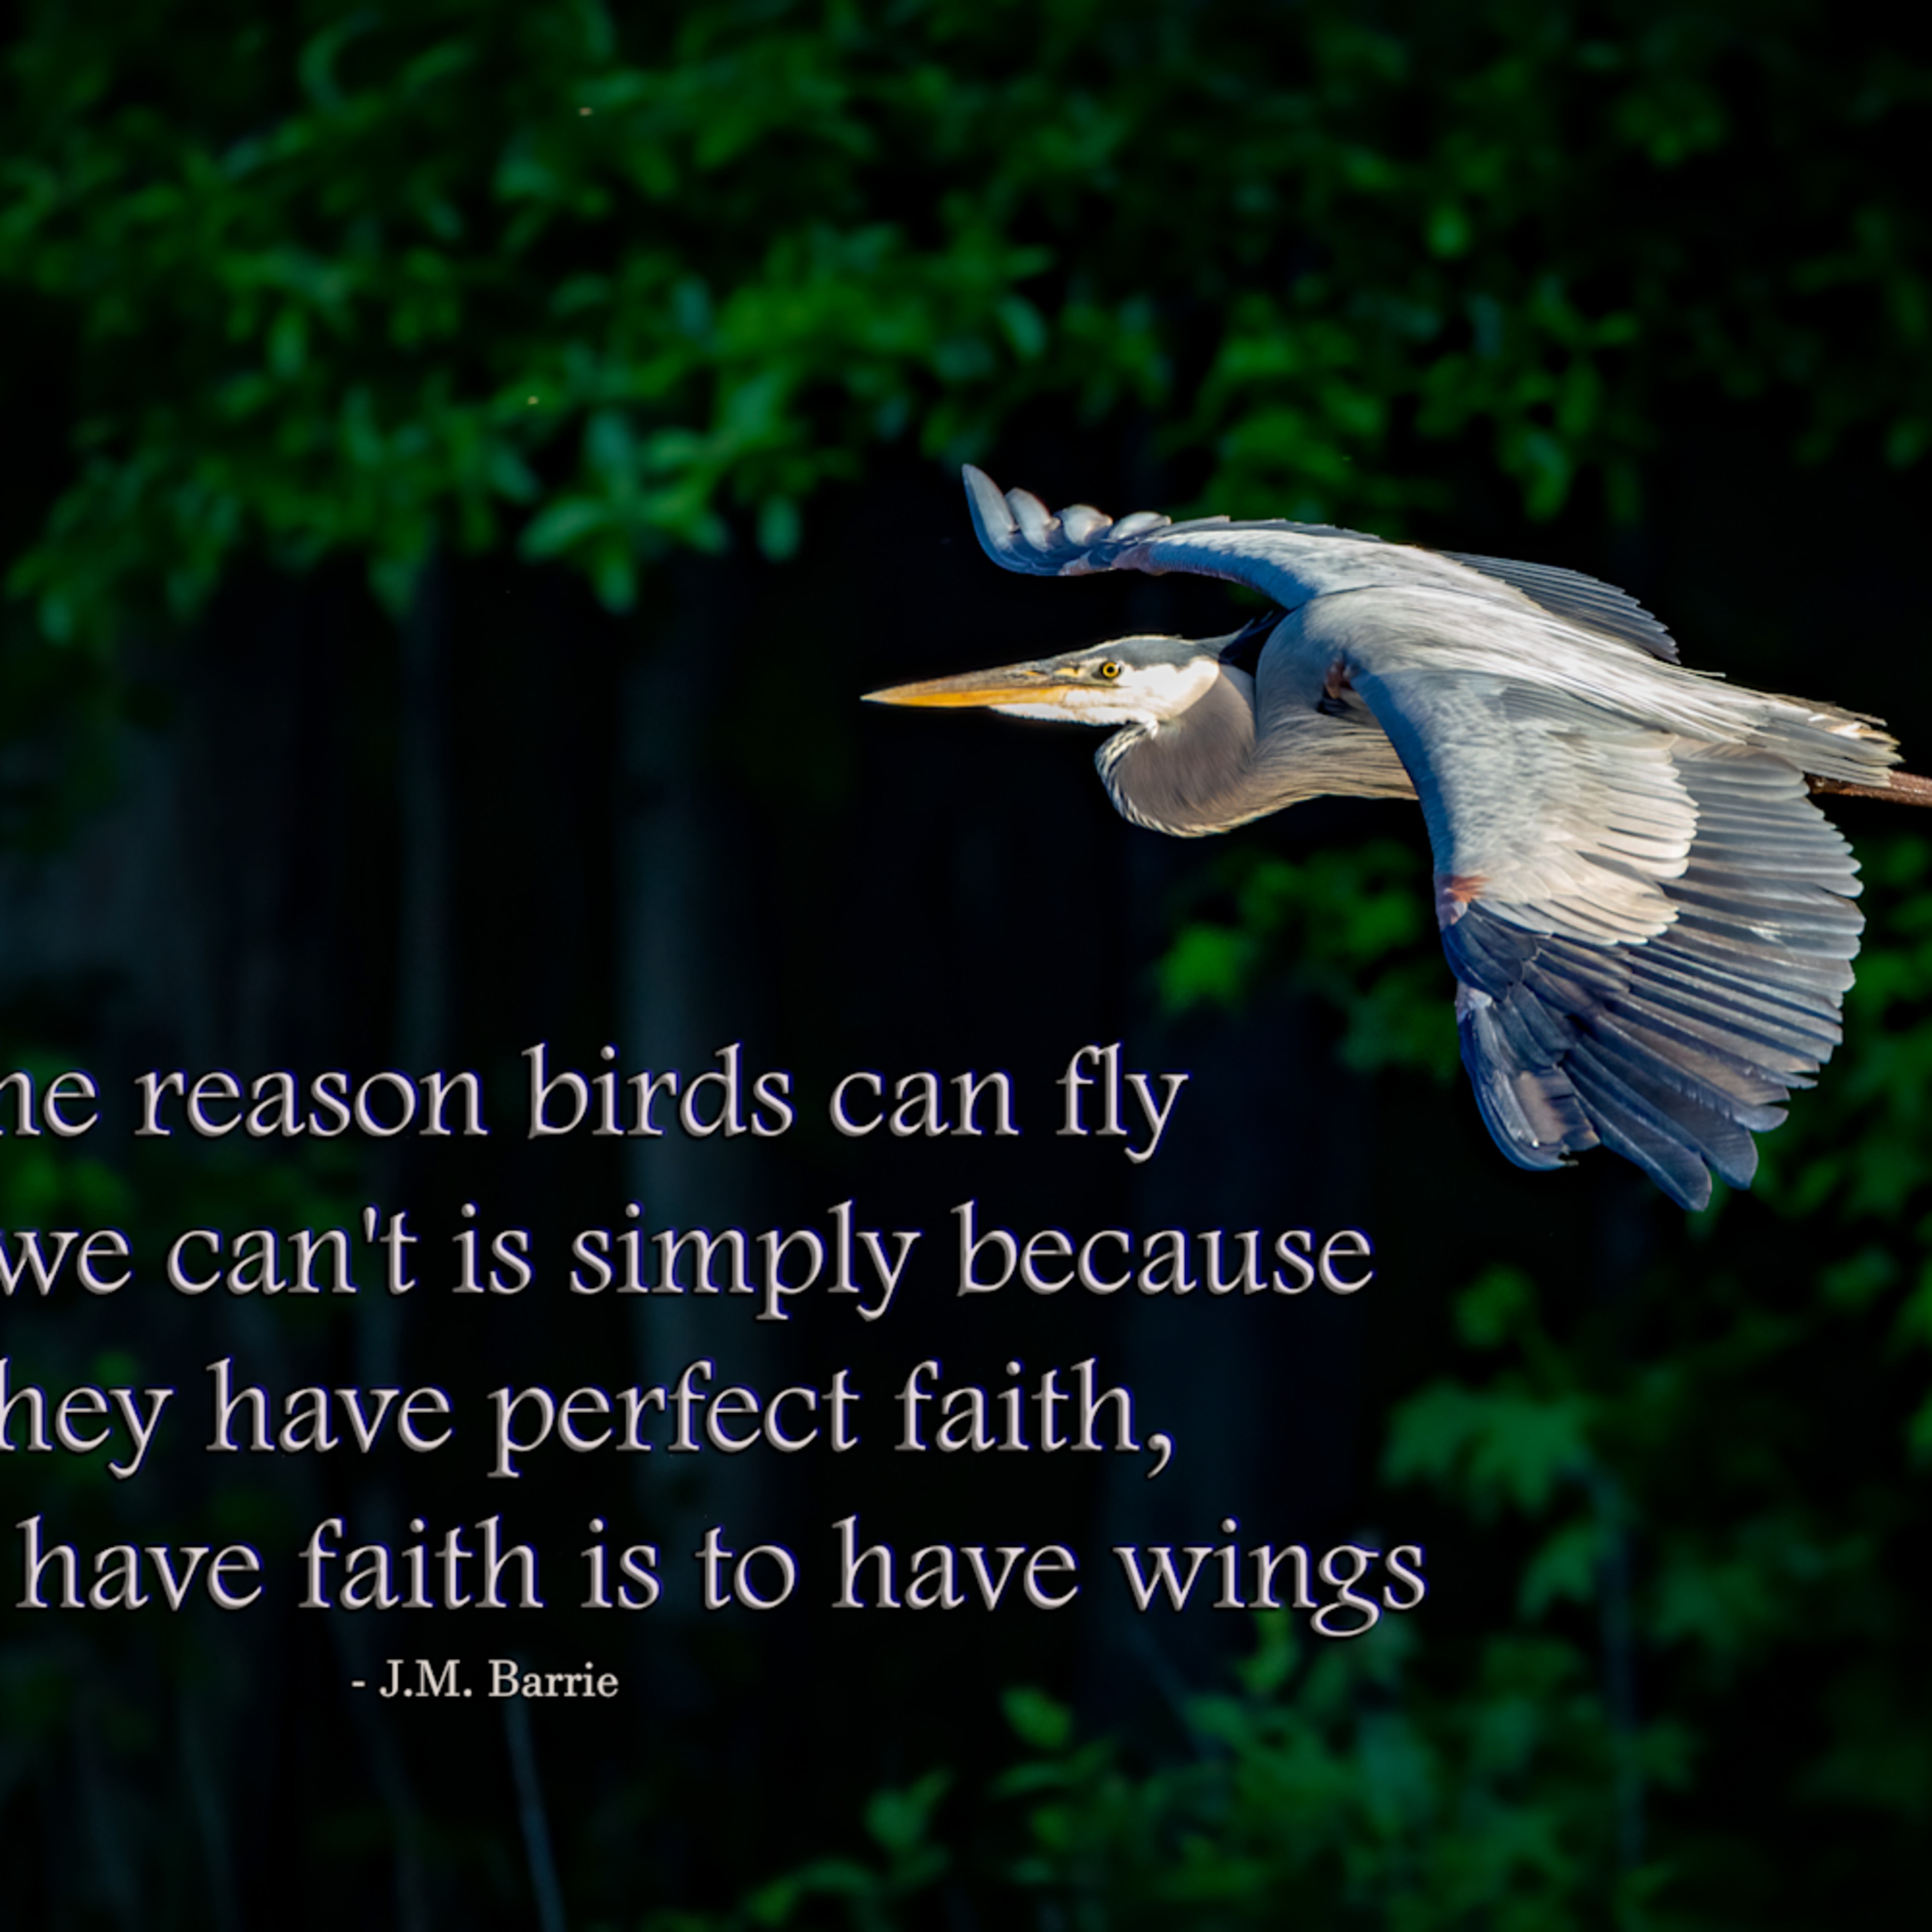 To have faith is to have wings asnrjq